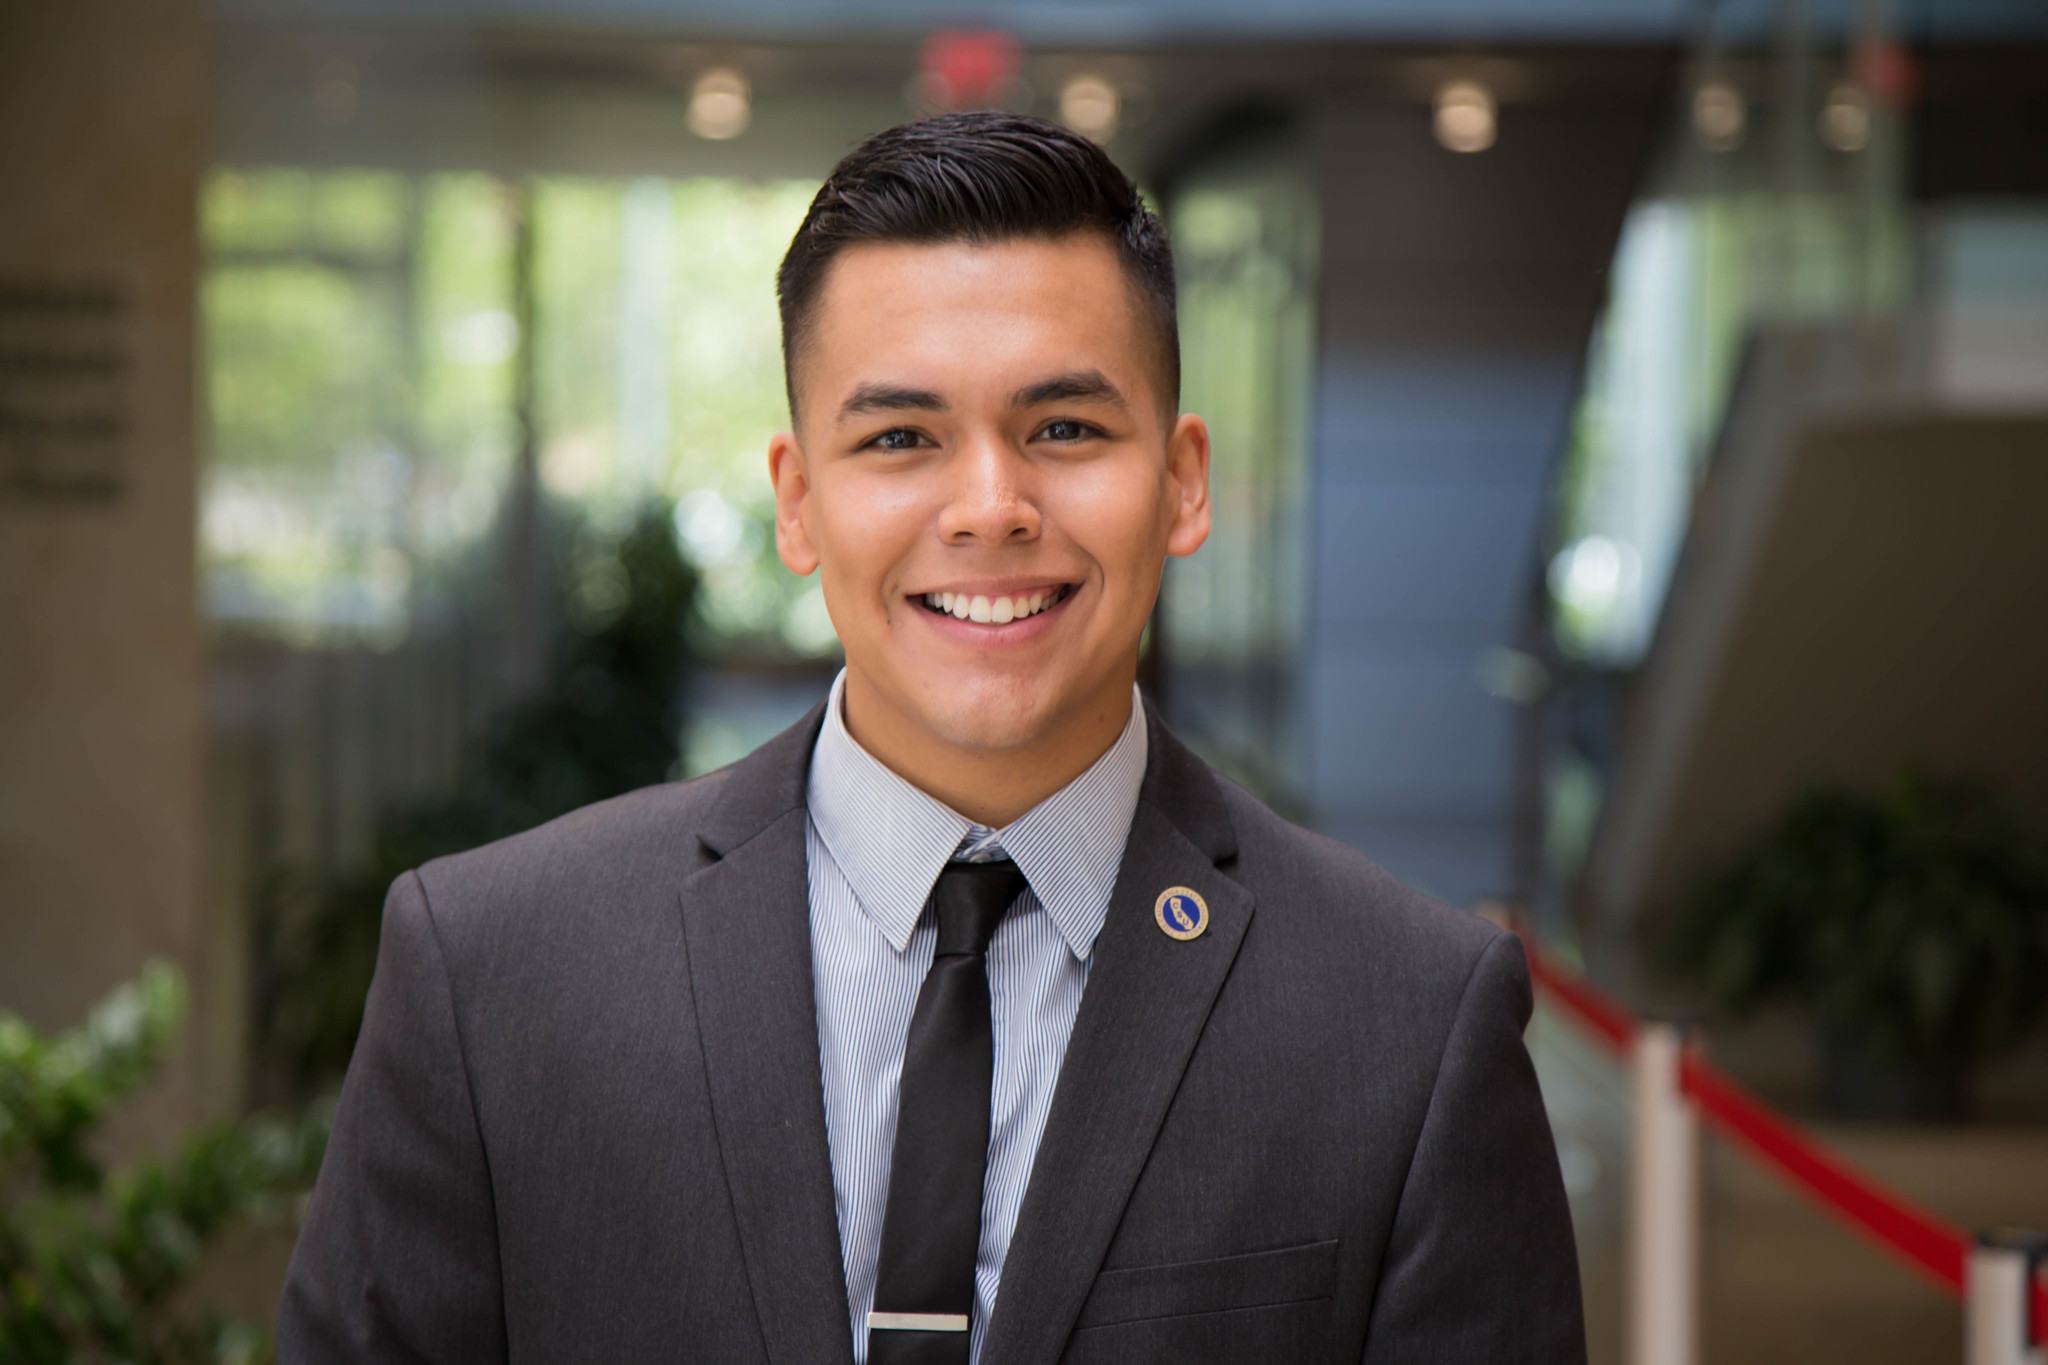 Jorge Reyes Salinas was able to get a campus job at Cal State Northridge thanks to DACA.